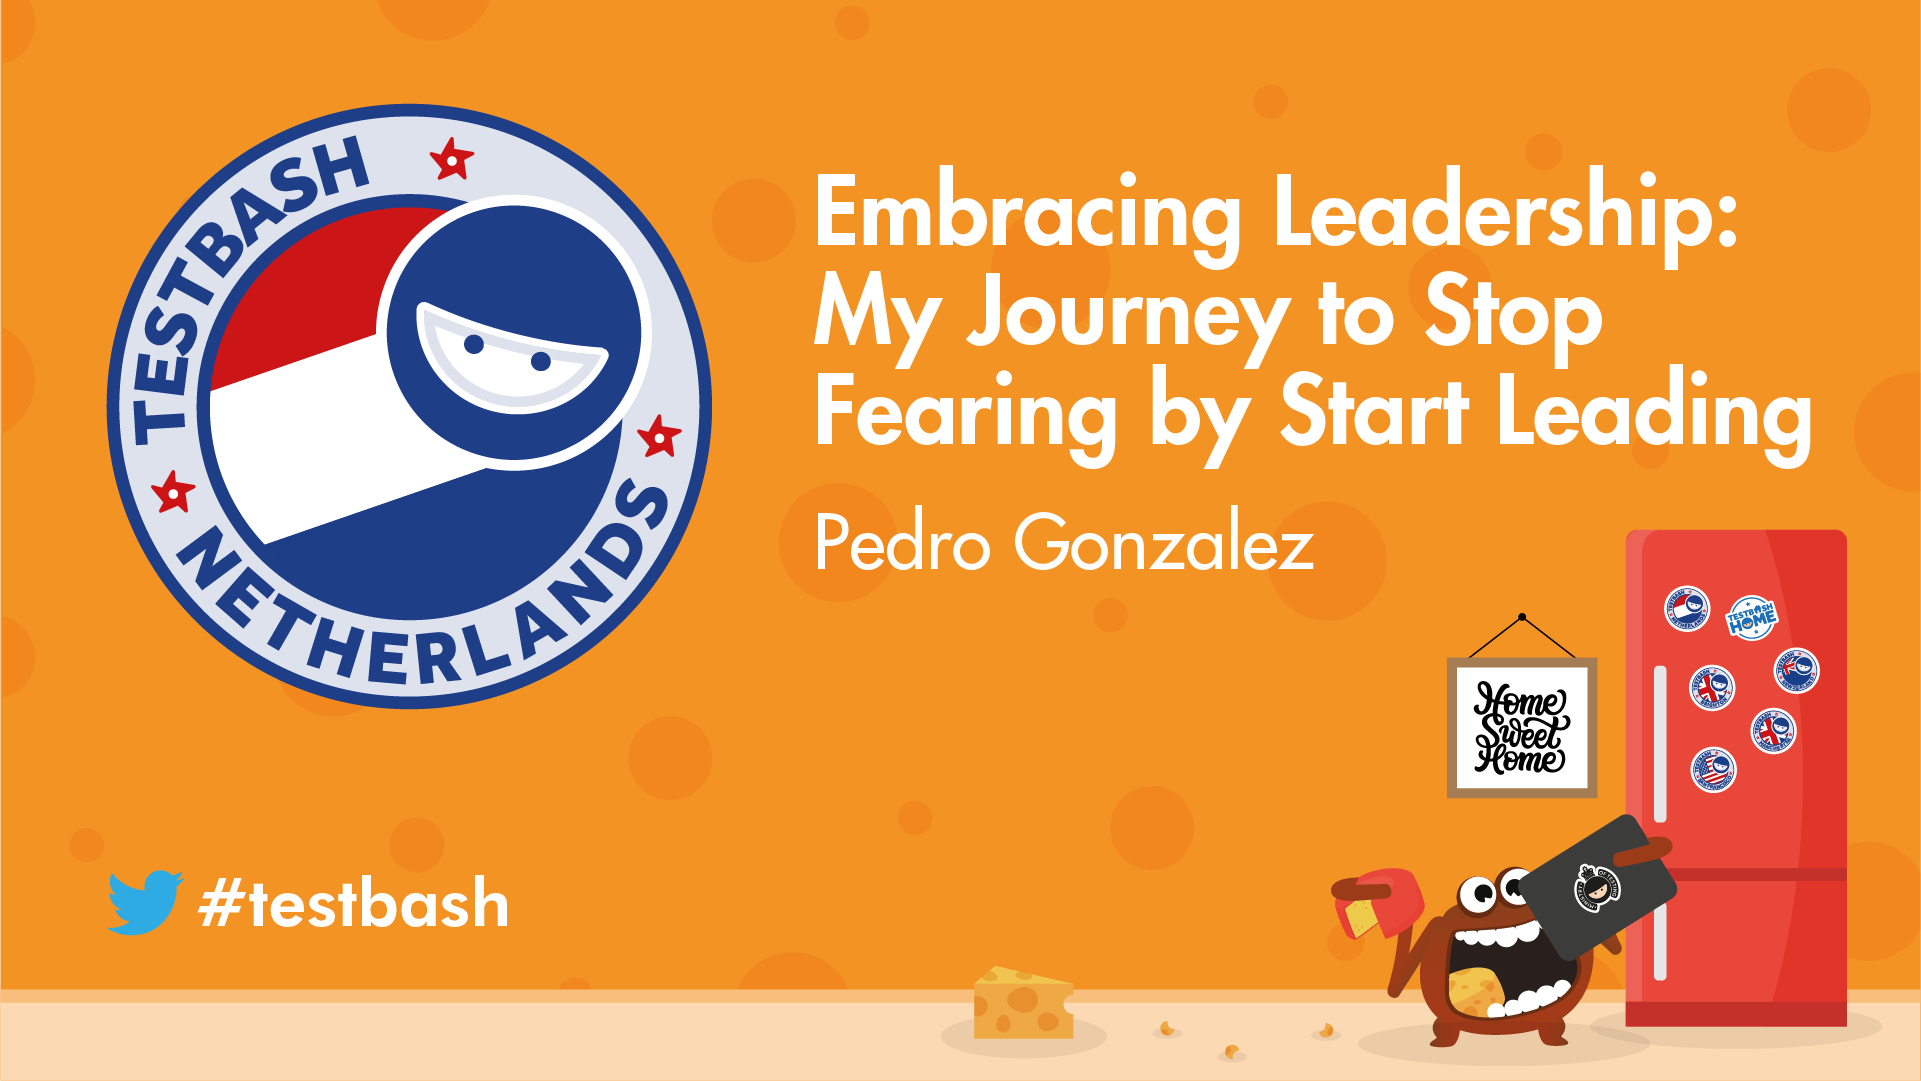 Embracing Leadership: My Journey to Stop Fearing and Start Leading - Pedro Gonzalez